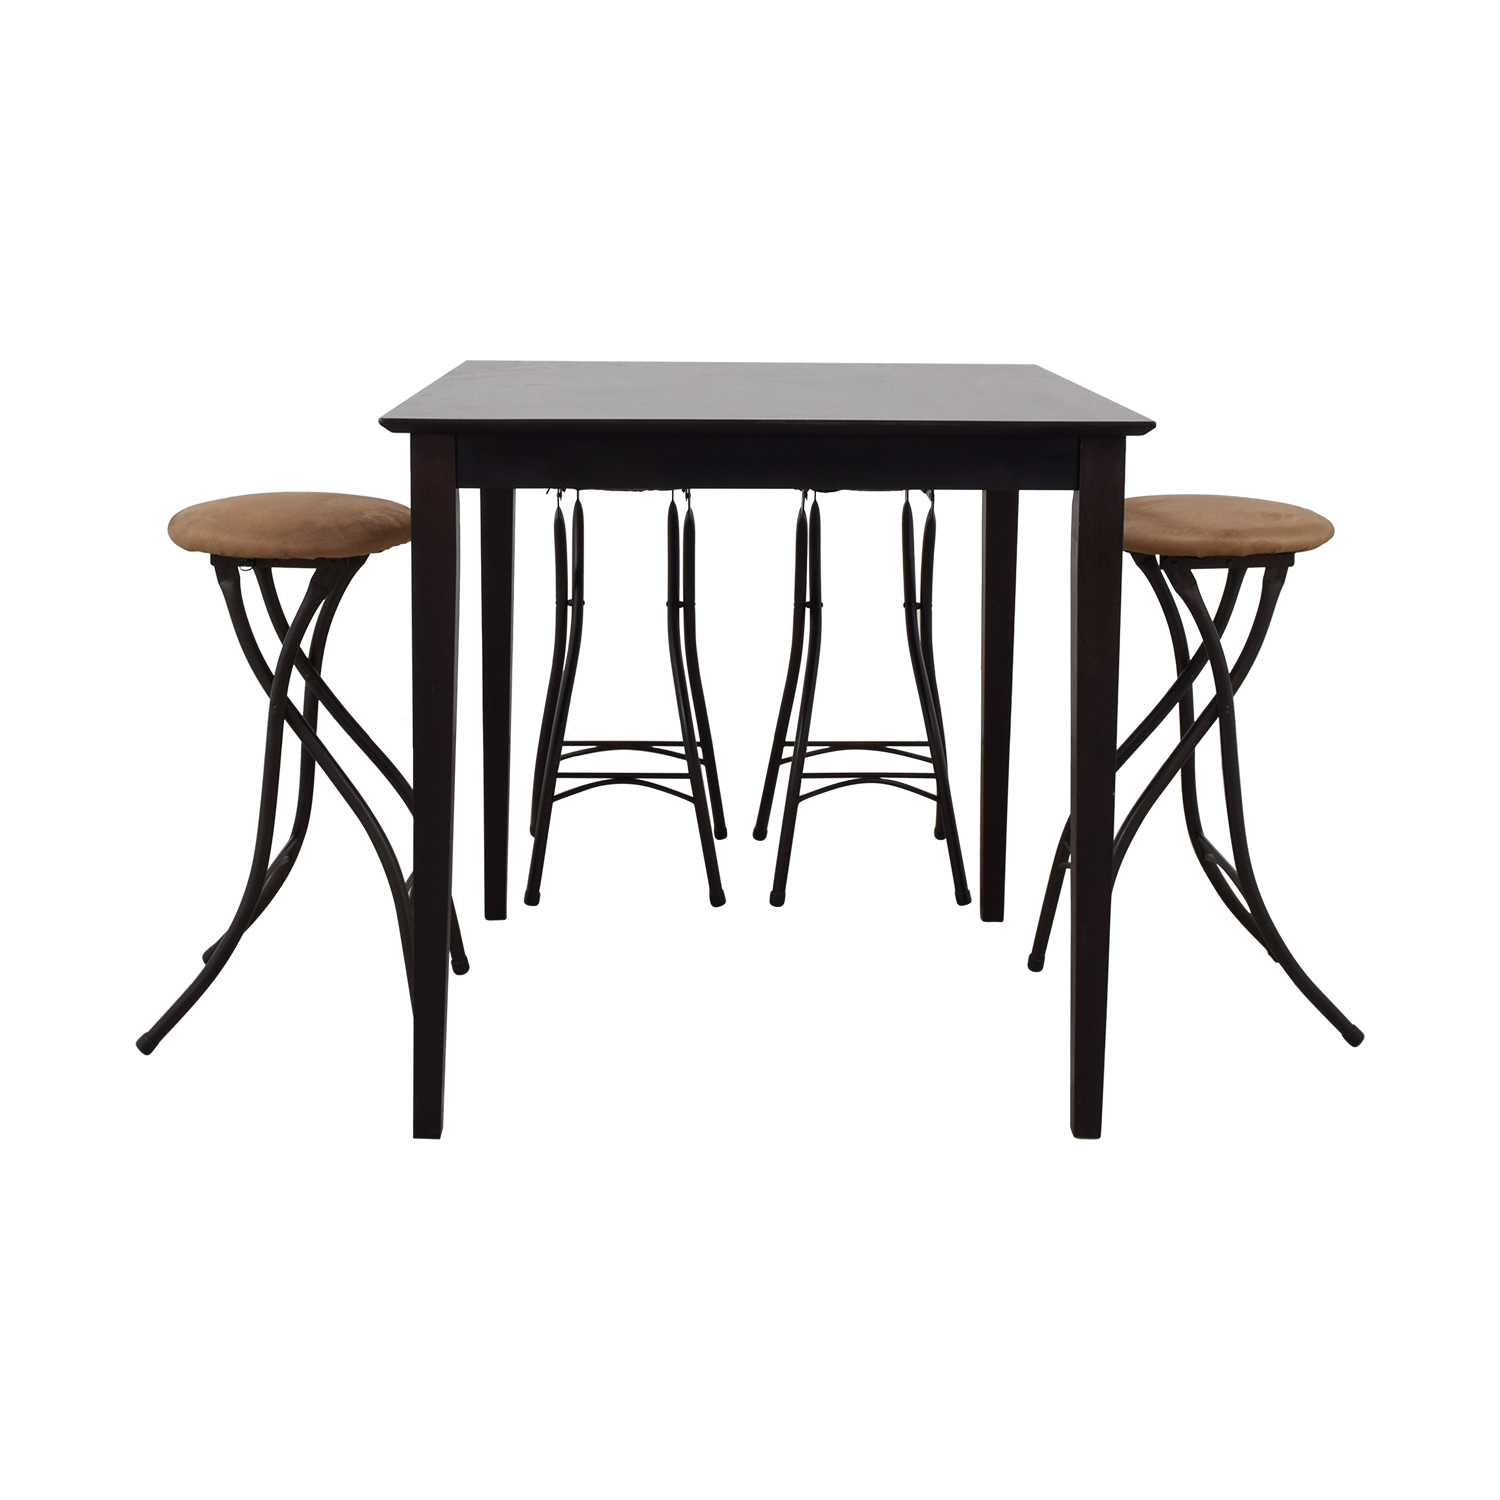 Cheyenne Industries Cheyenne Industries Counter Top Dining Set With Stools